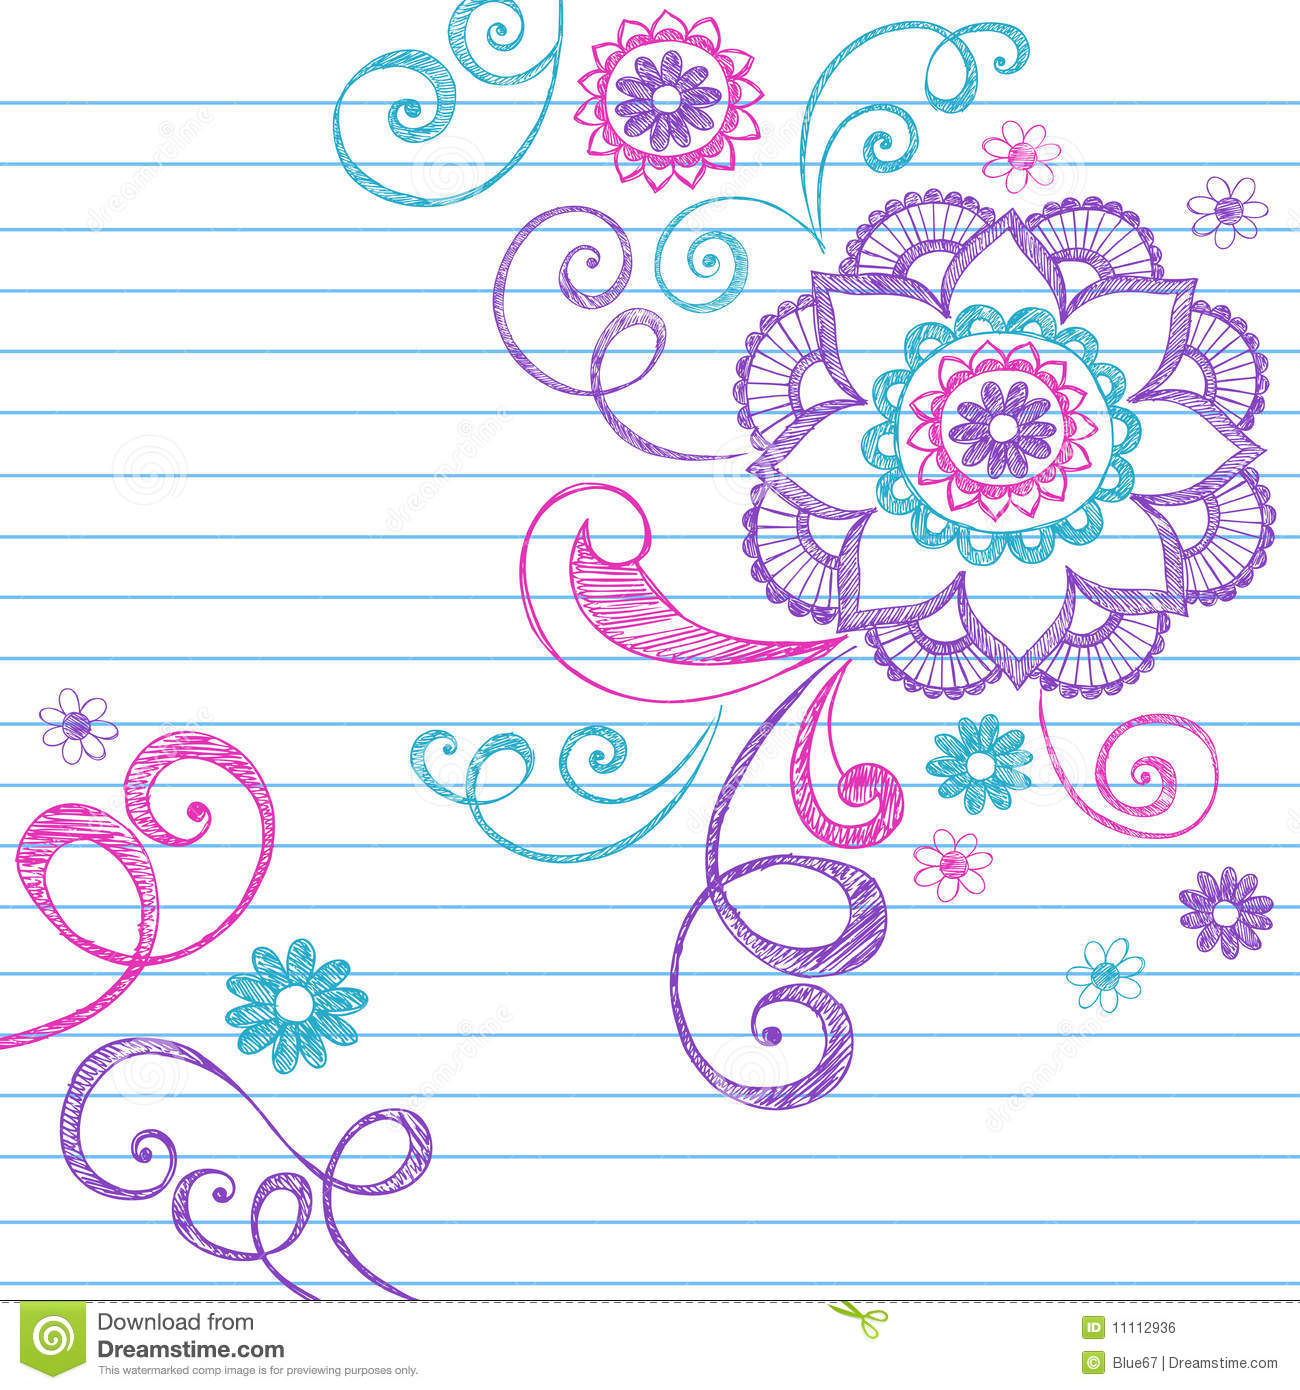 Turquoise Flower Clipart amp Free Clip Art Images 2548